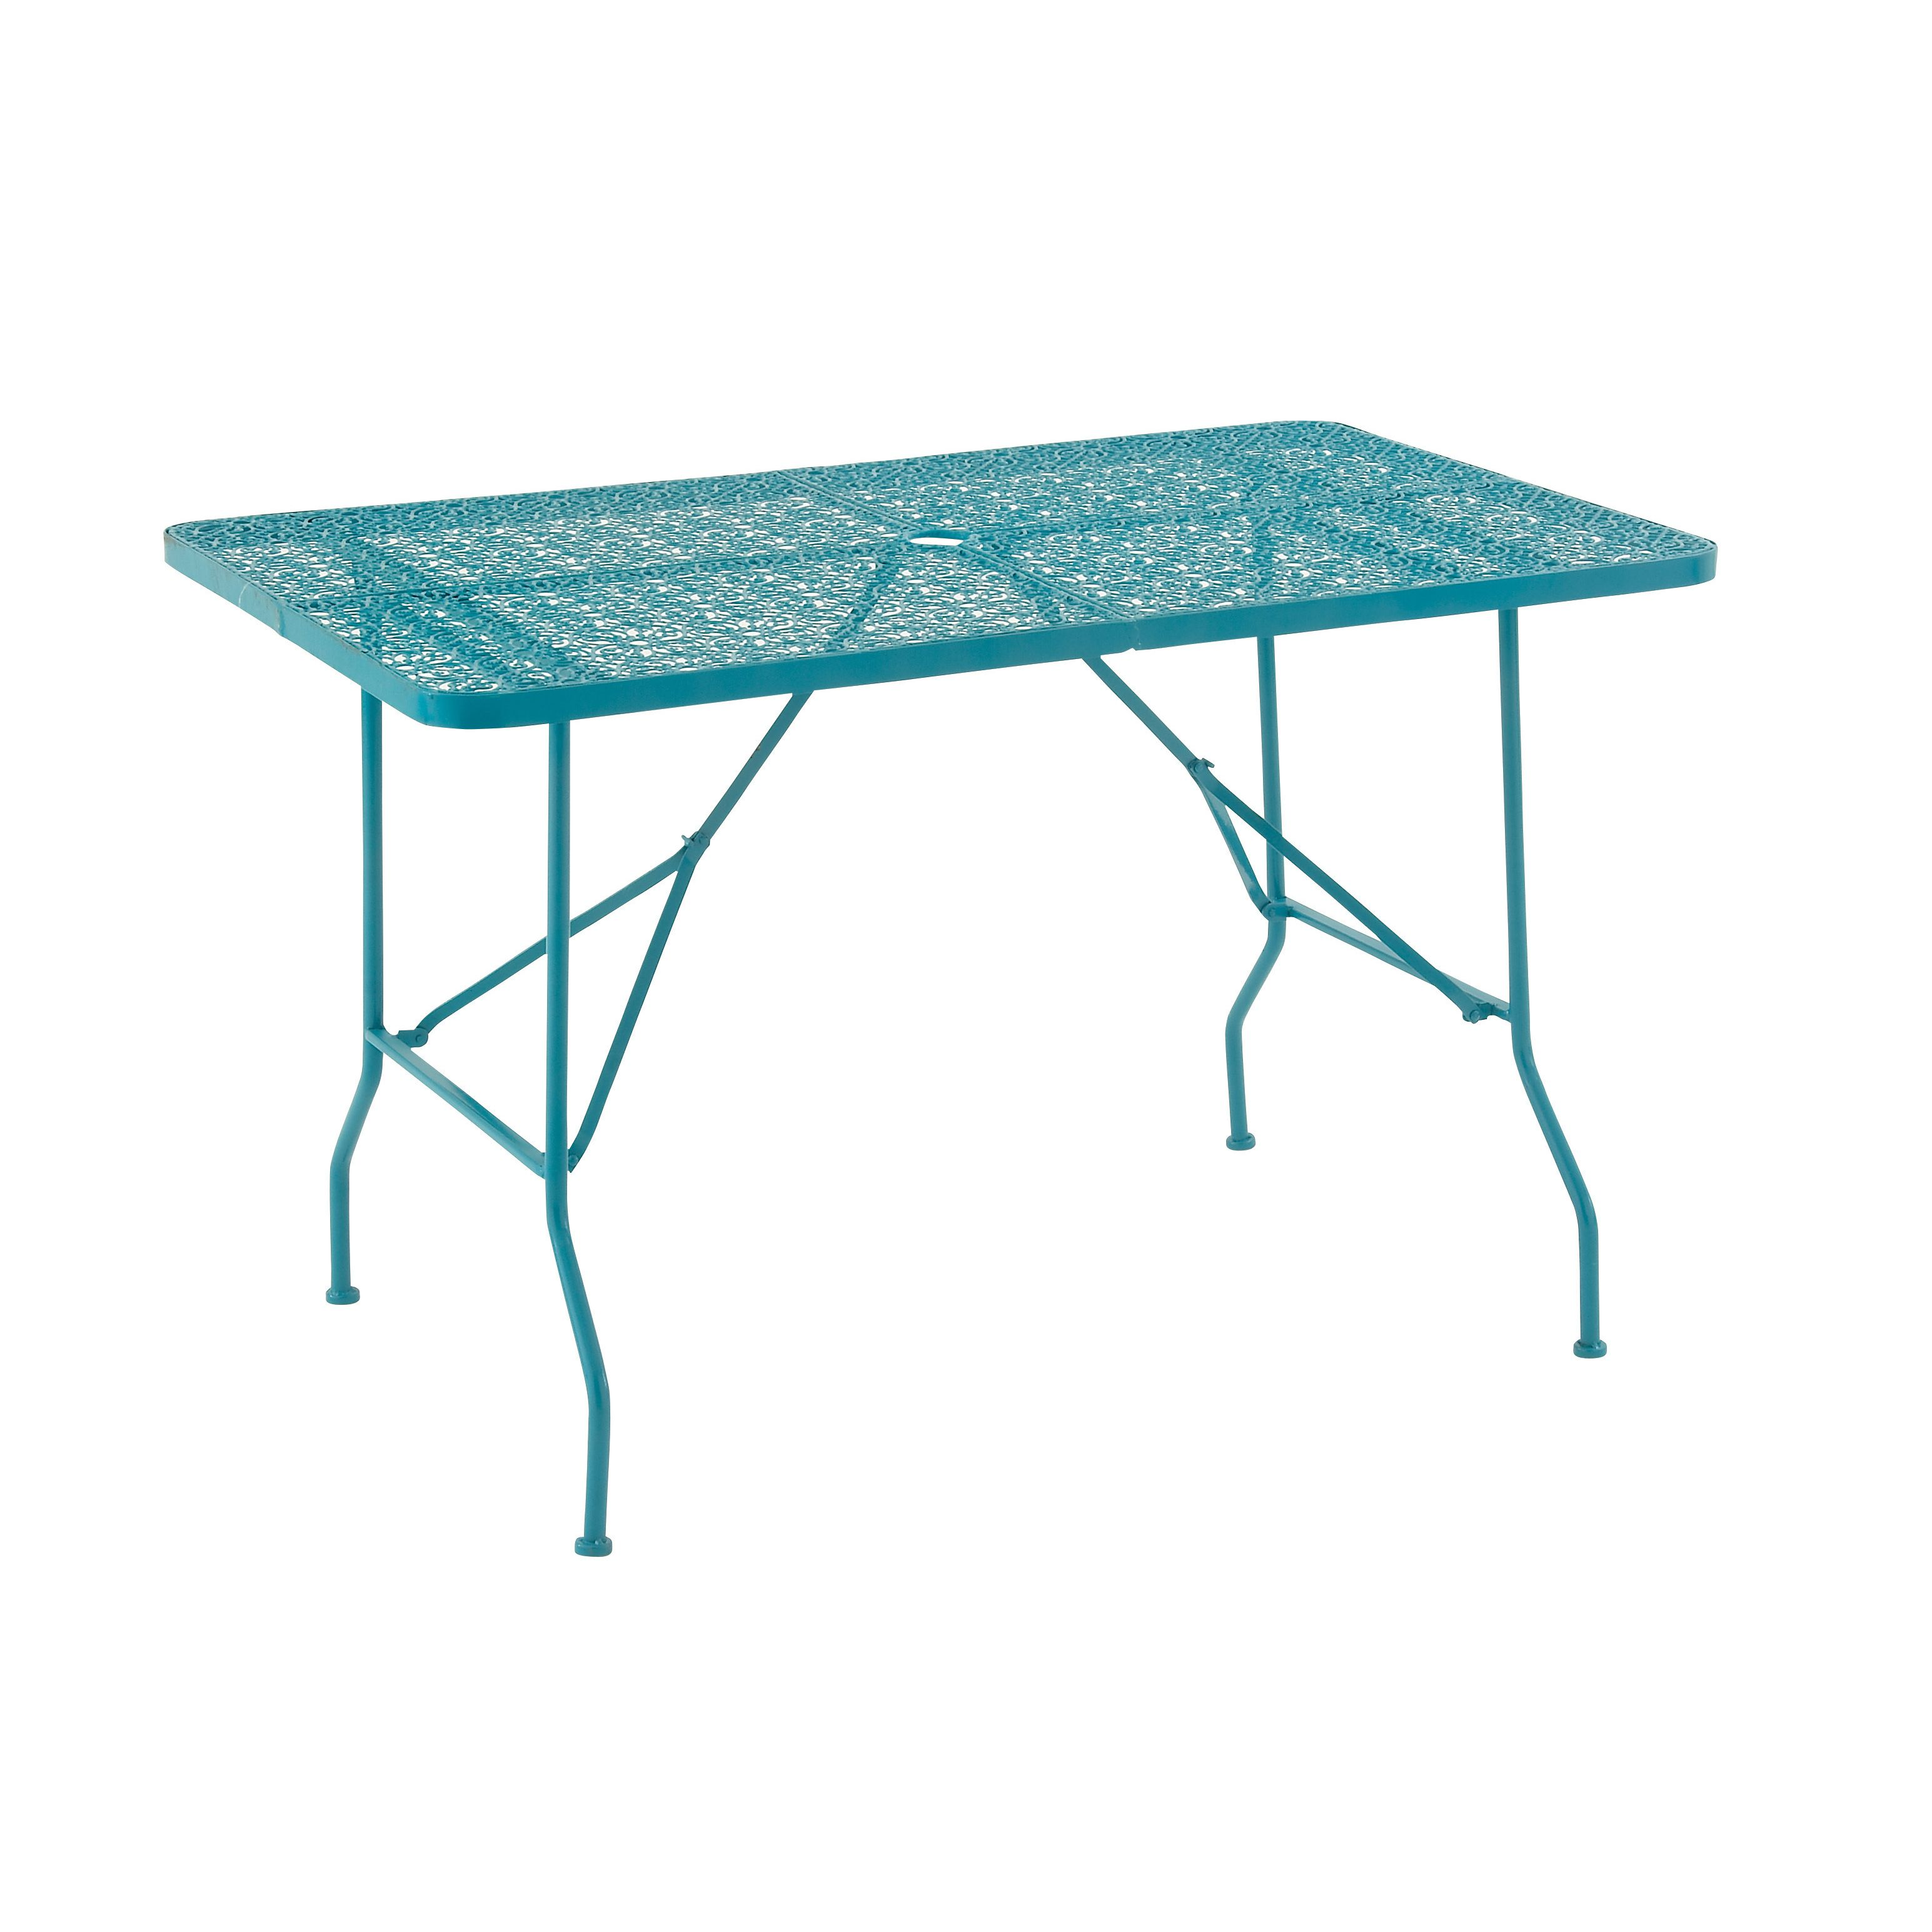 Studio quirky metal folding outdoor table blue patio furniture